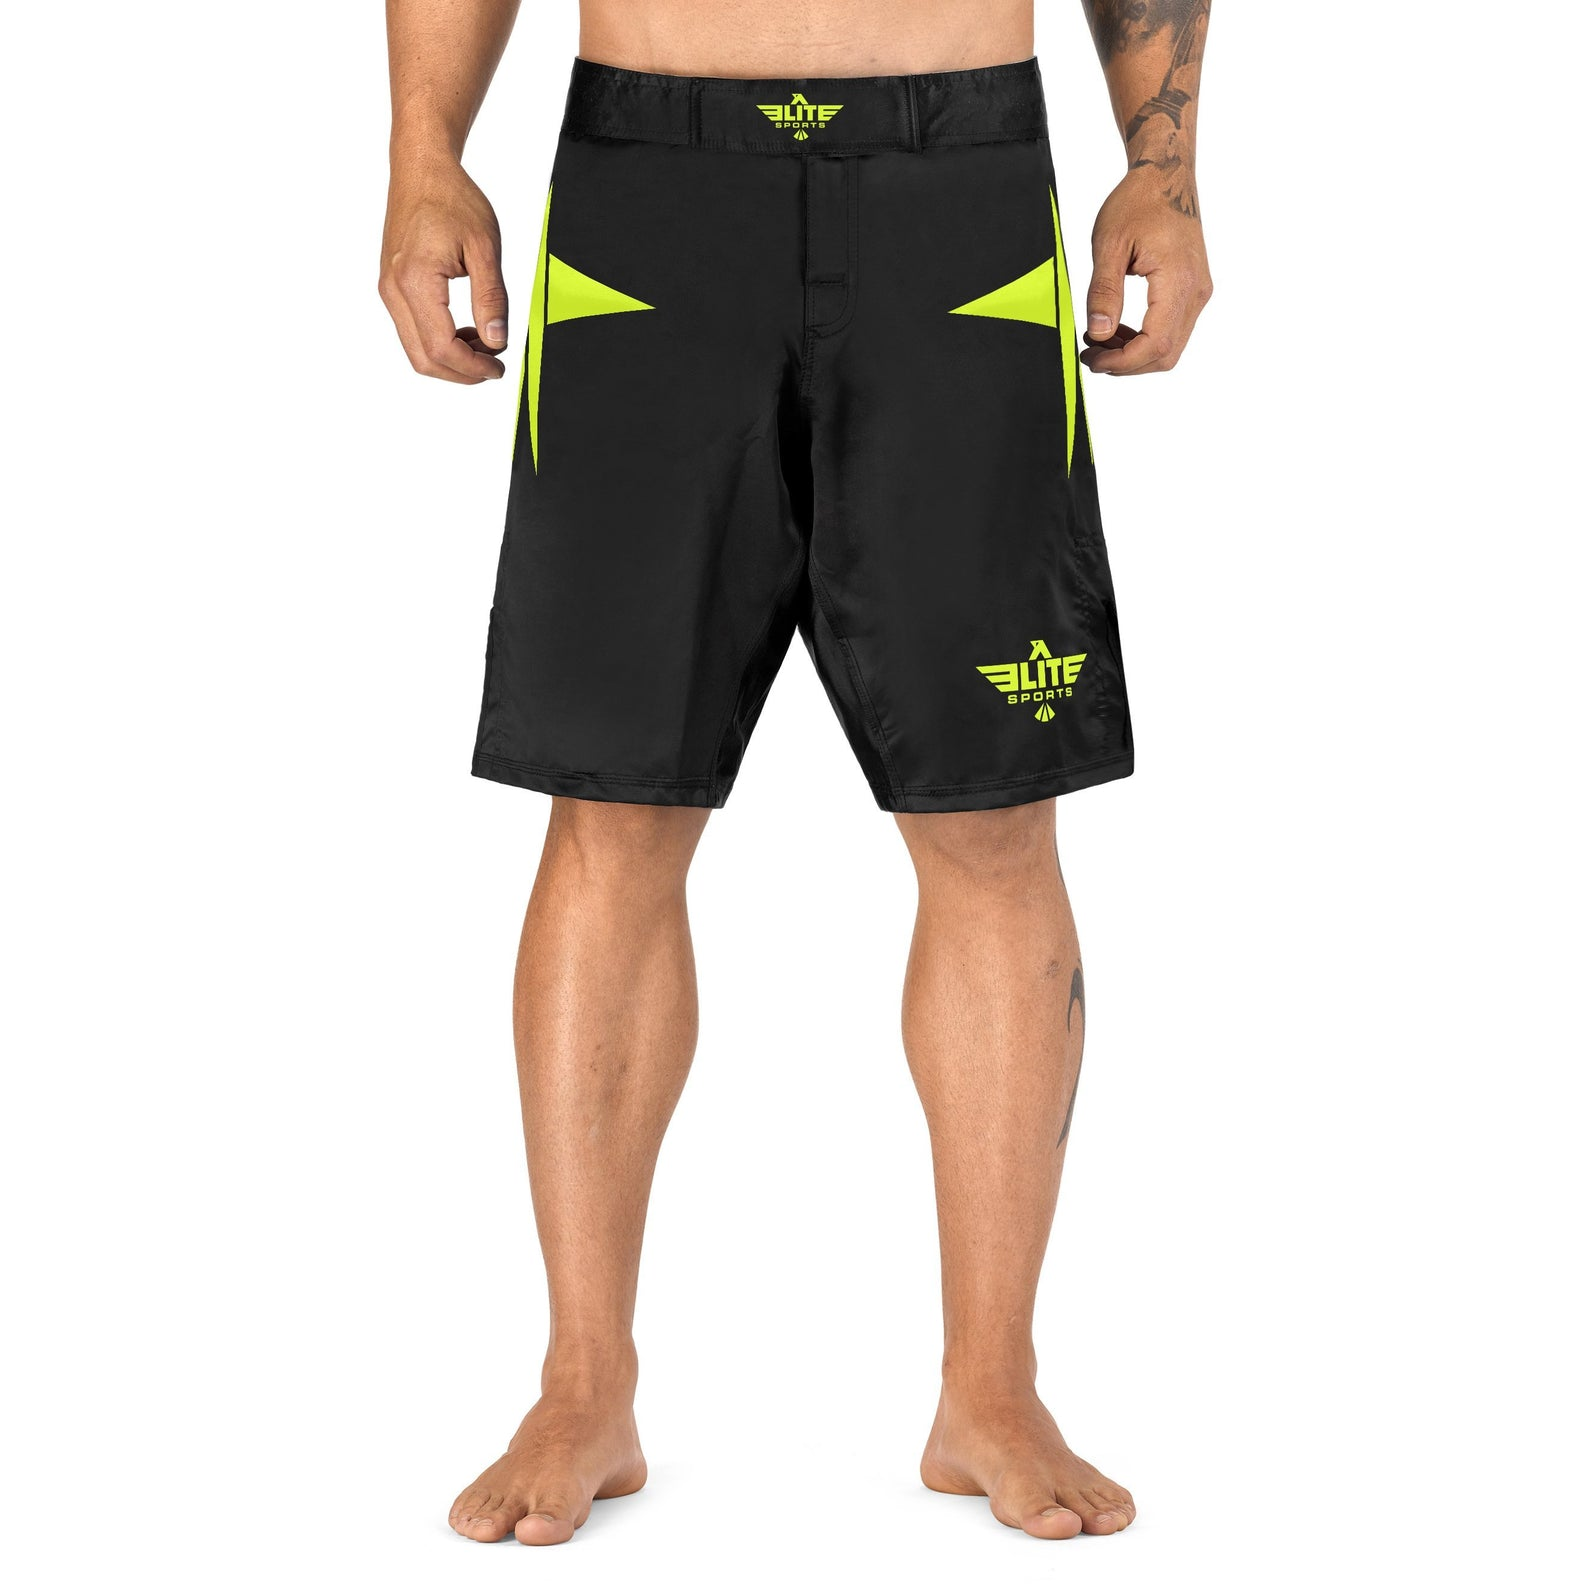 Elite Sports Star Series Sublimation Black/Hi Viz Training Shorts